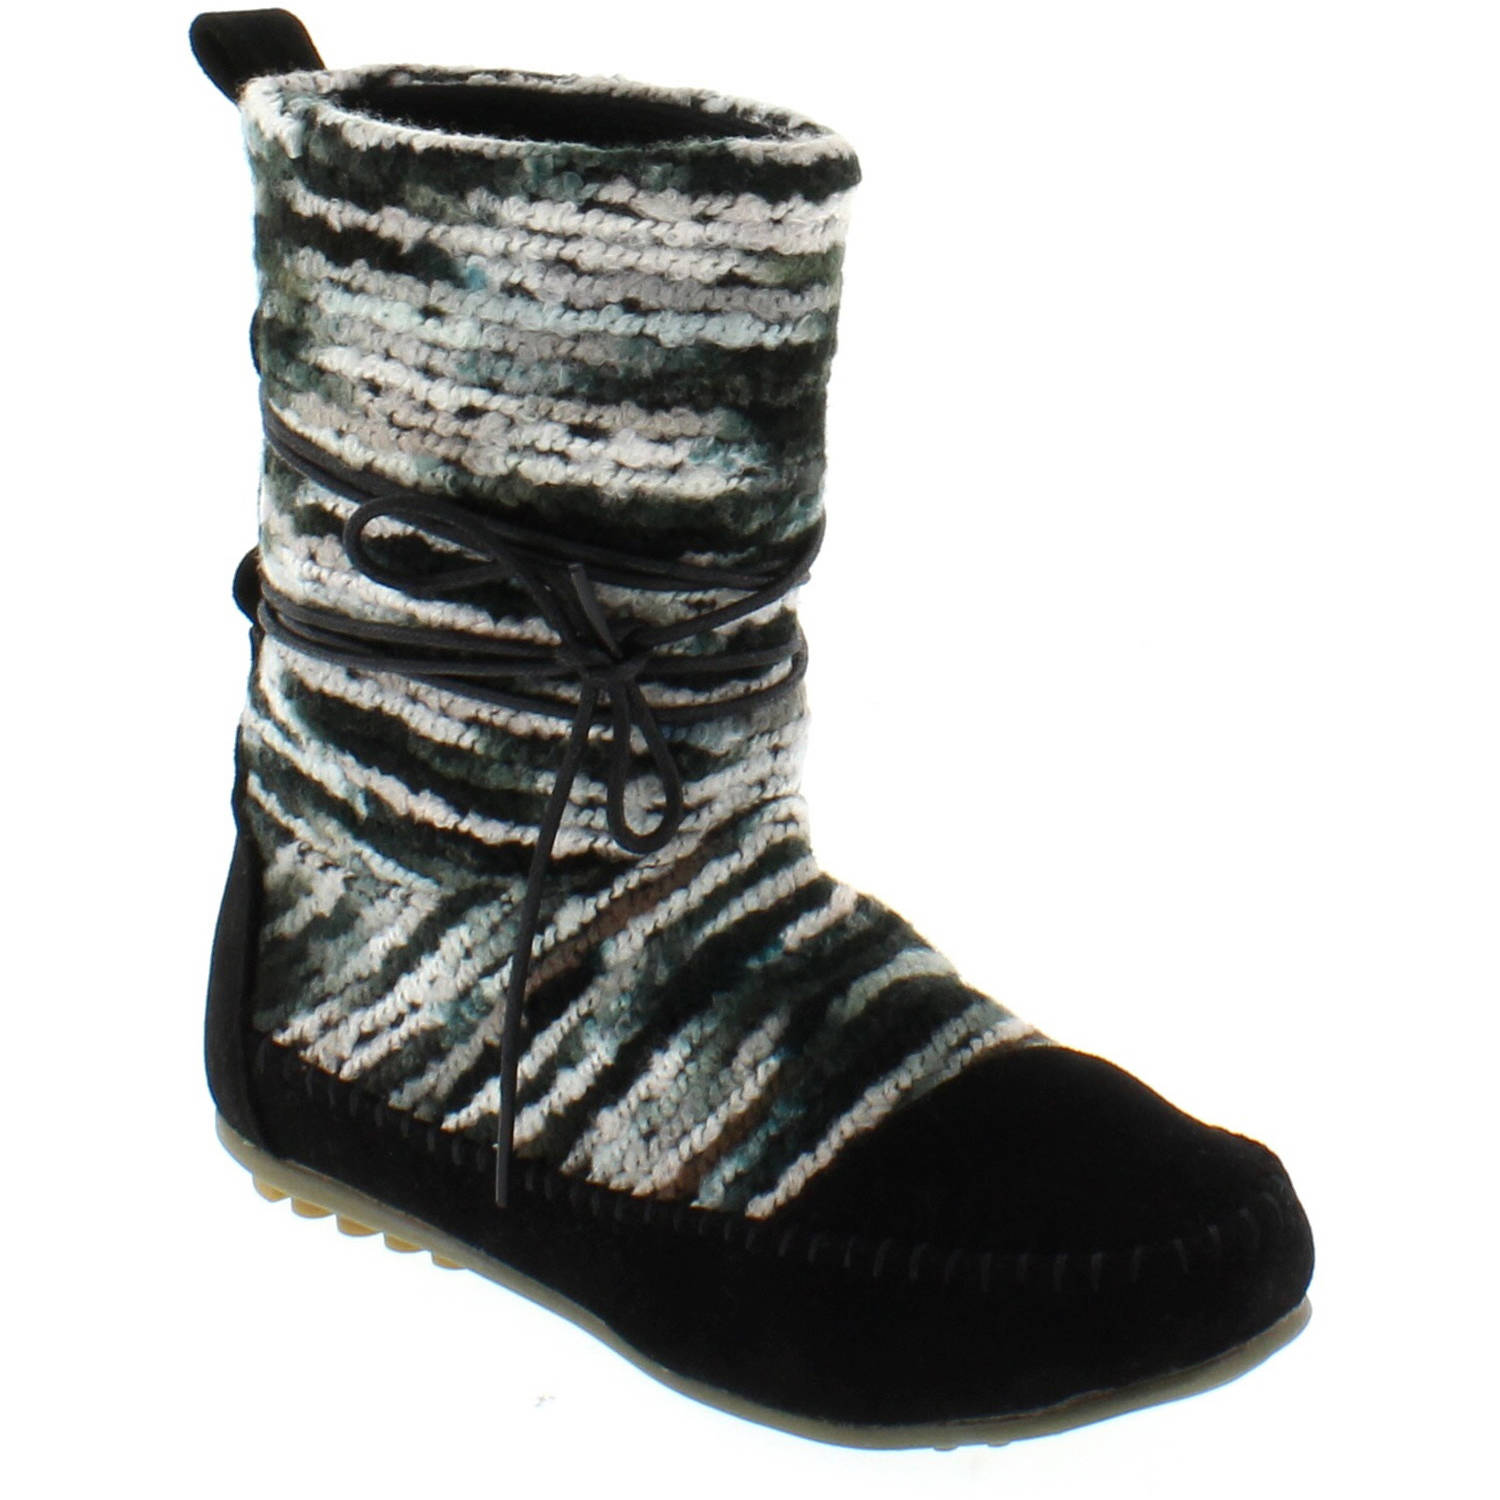 Shoes of Soul Women's Woolen Boots